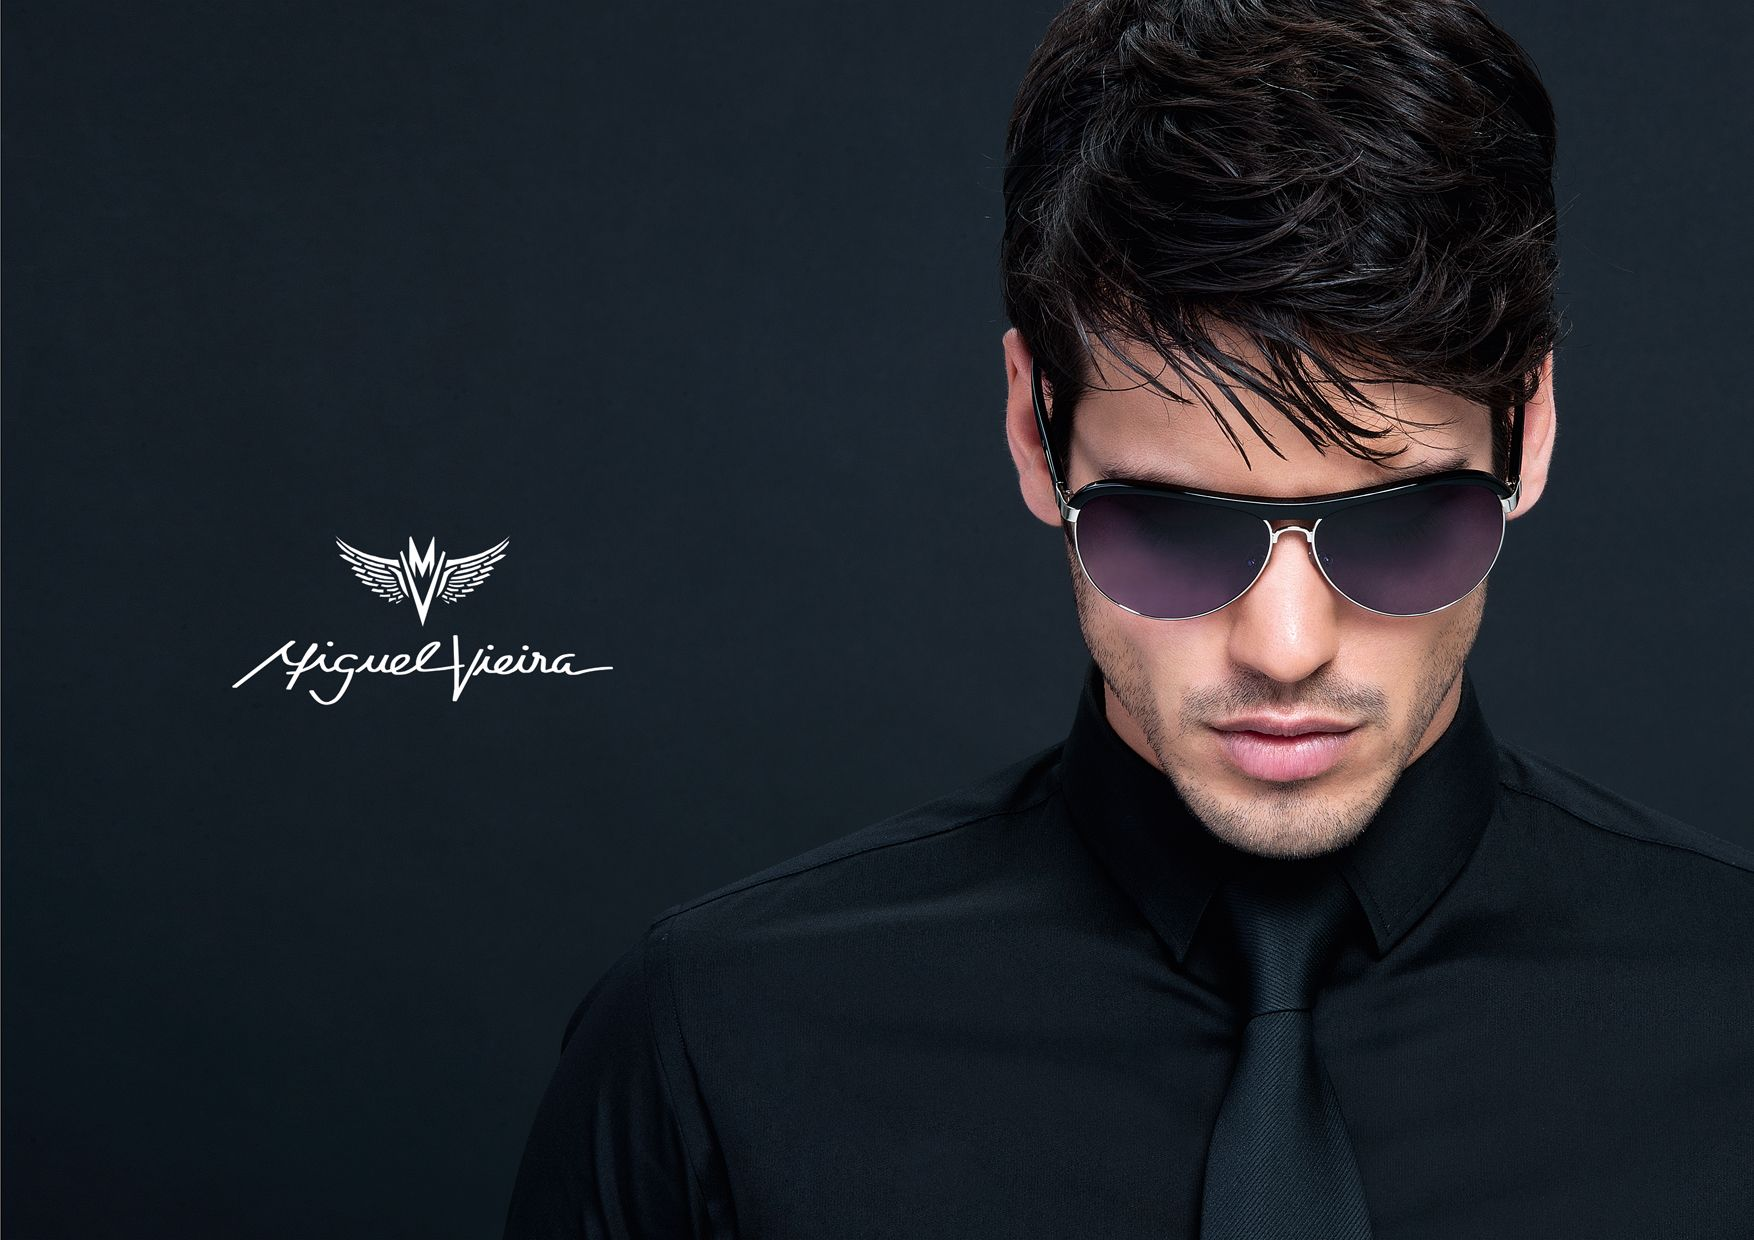 11d1ec2c6a497 Miguel Vieira . SS 2013 Eyewear Collection   Campaigns   Pinterest ...